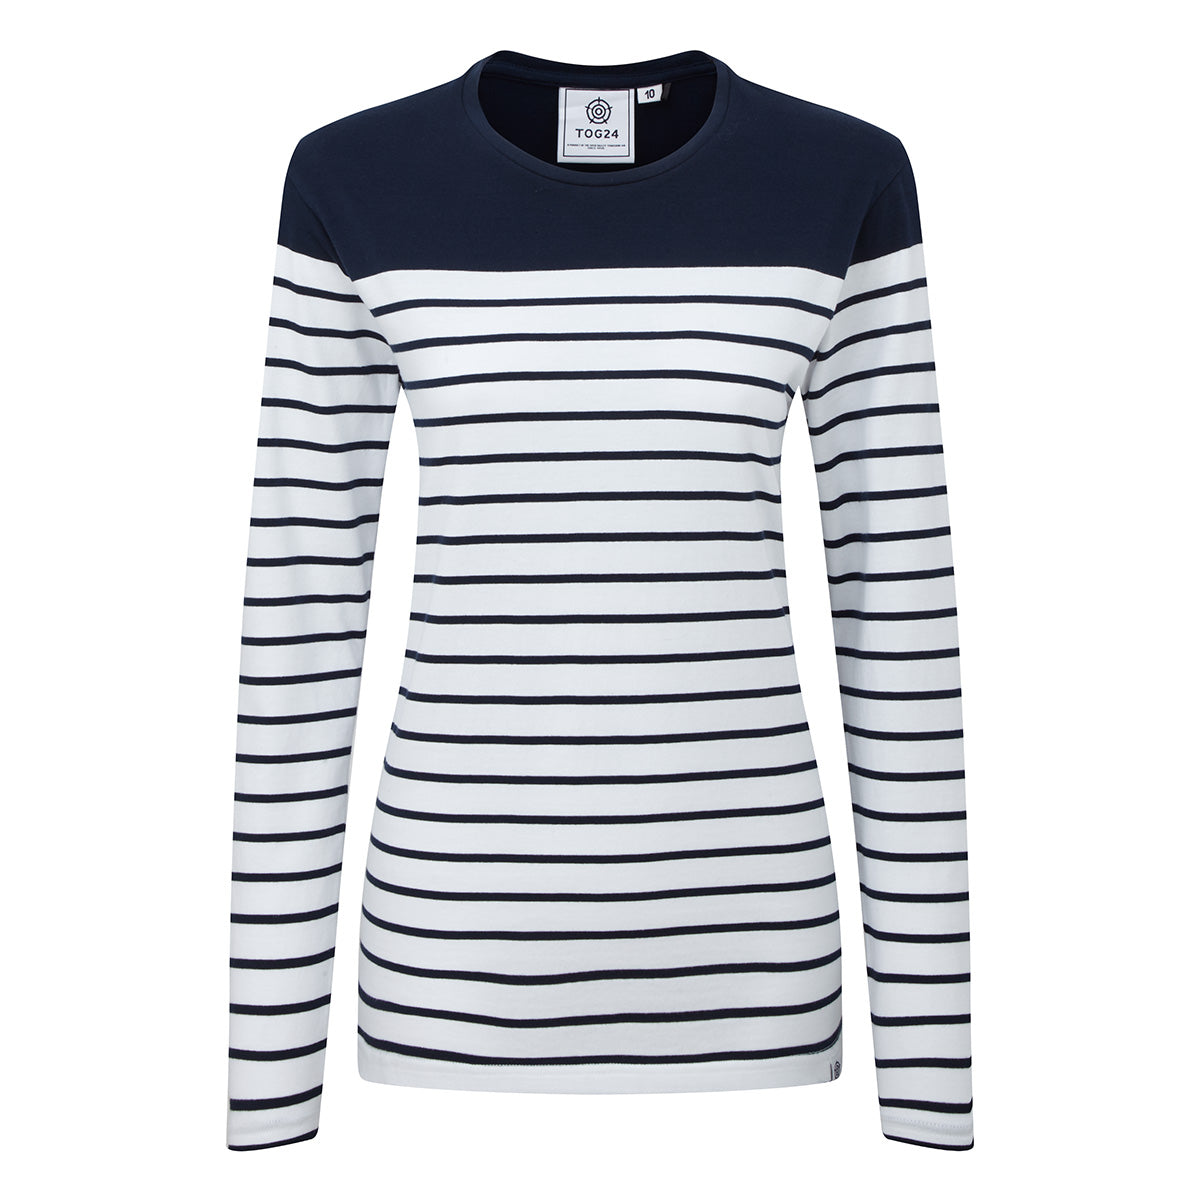 Braythorn Womens Long Sleeve Stripe T-Shirt - Navy image 4